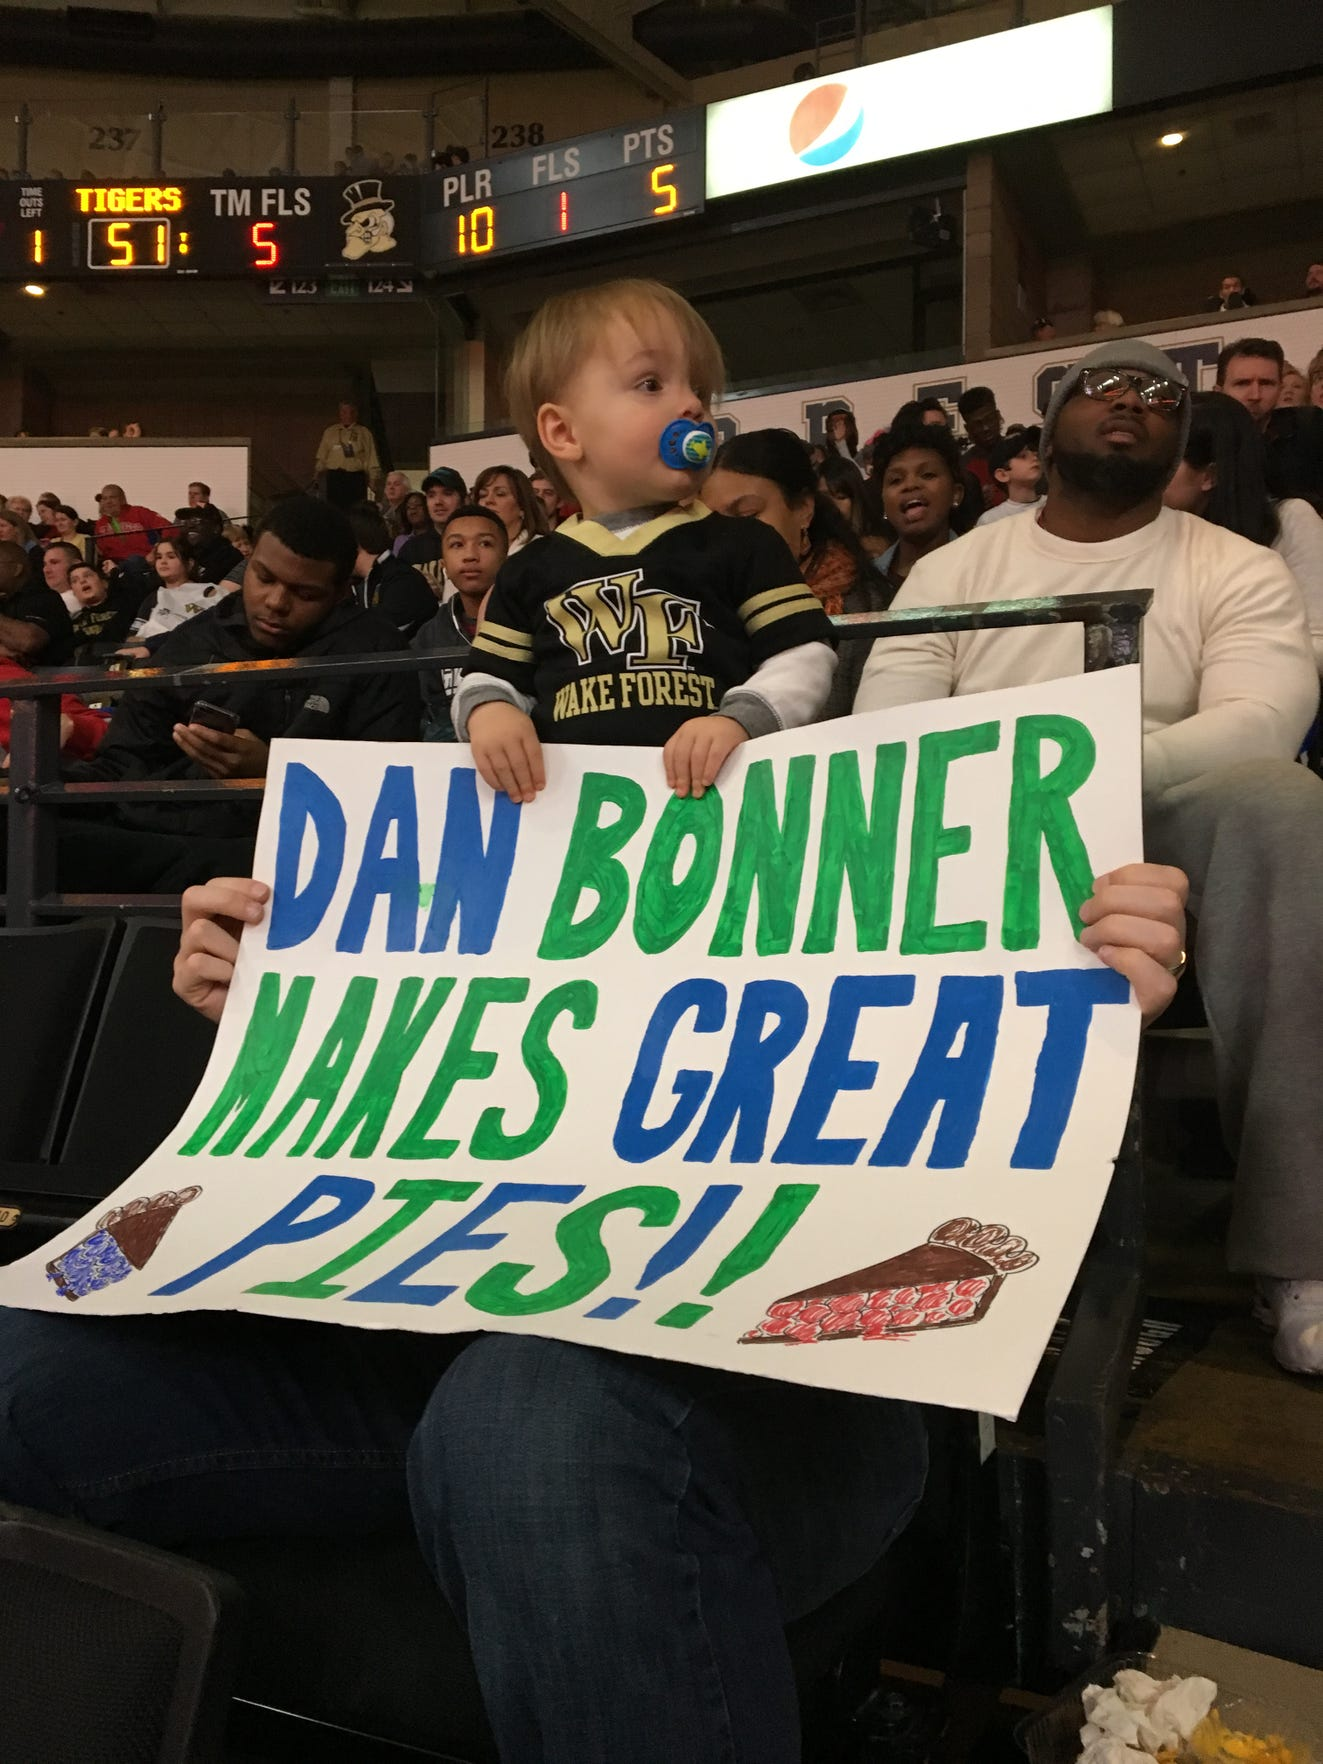 18-month-old Wilder Bryant tells the world about Dan Bonner's pie-making ability during a Wake Forest men's basketball game in 2016.